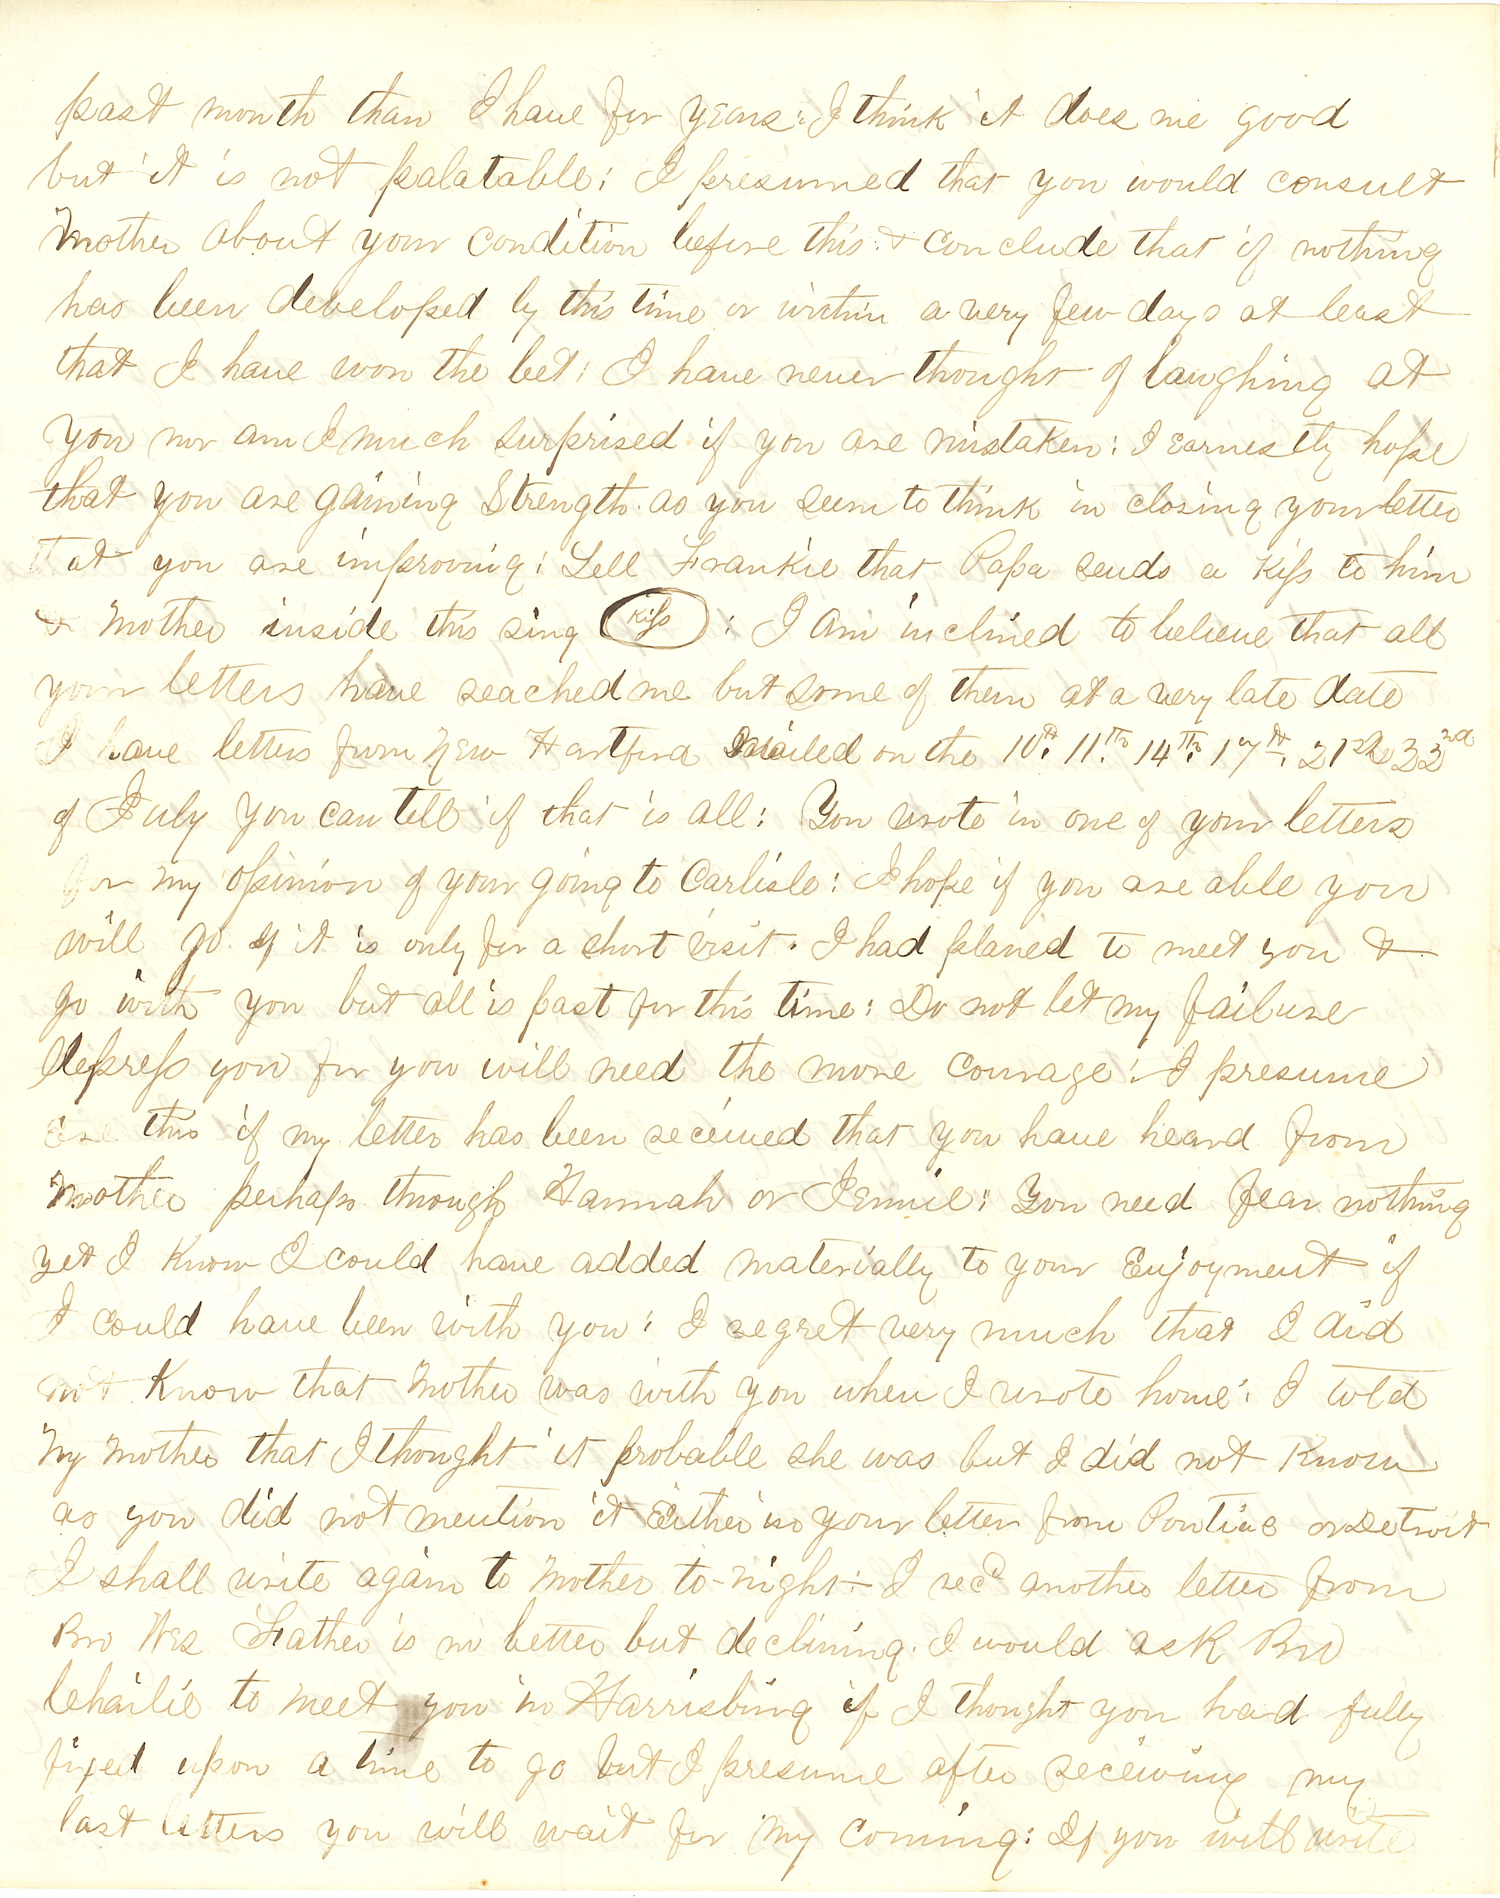 Joseph Culver Letter, July 28, 1863, Page 2